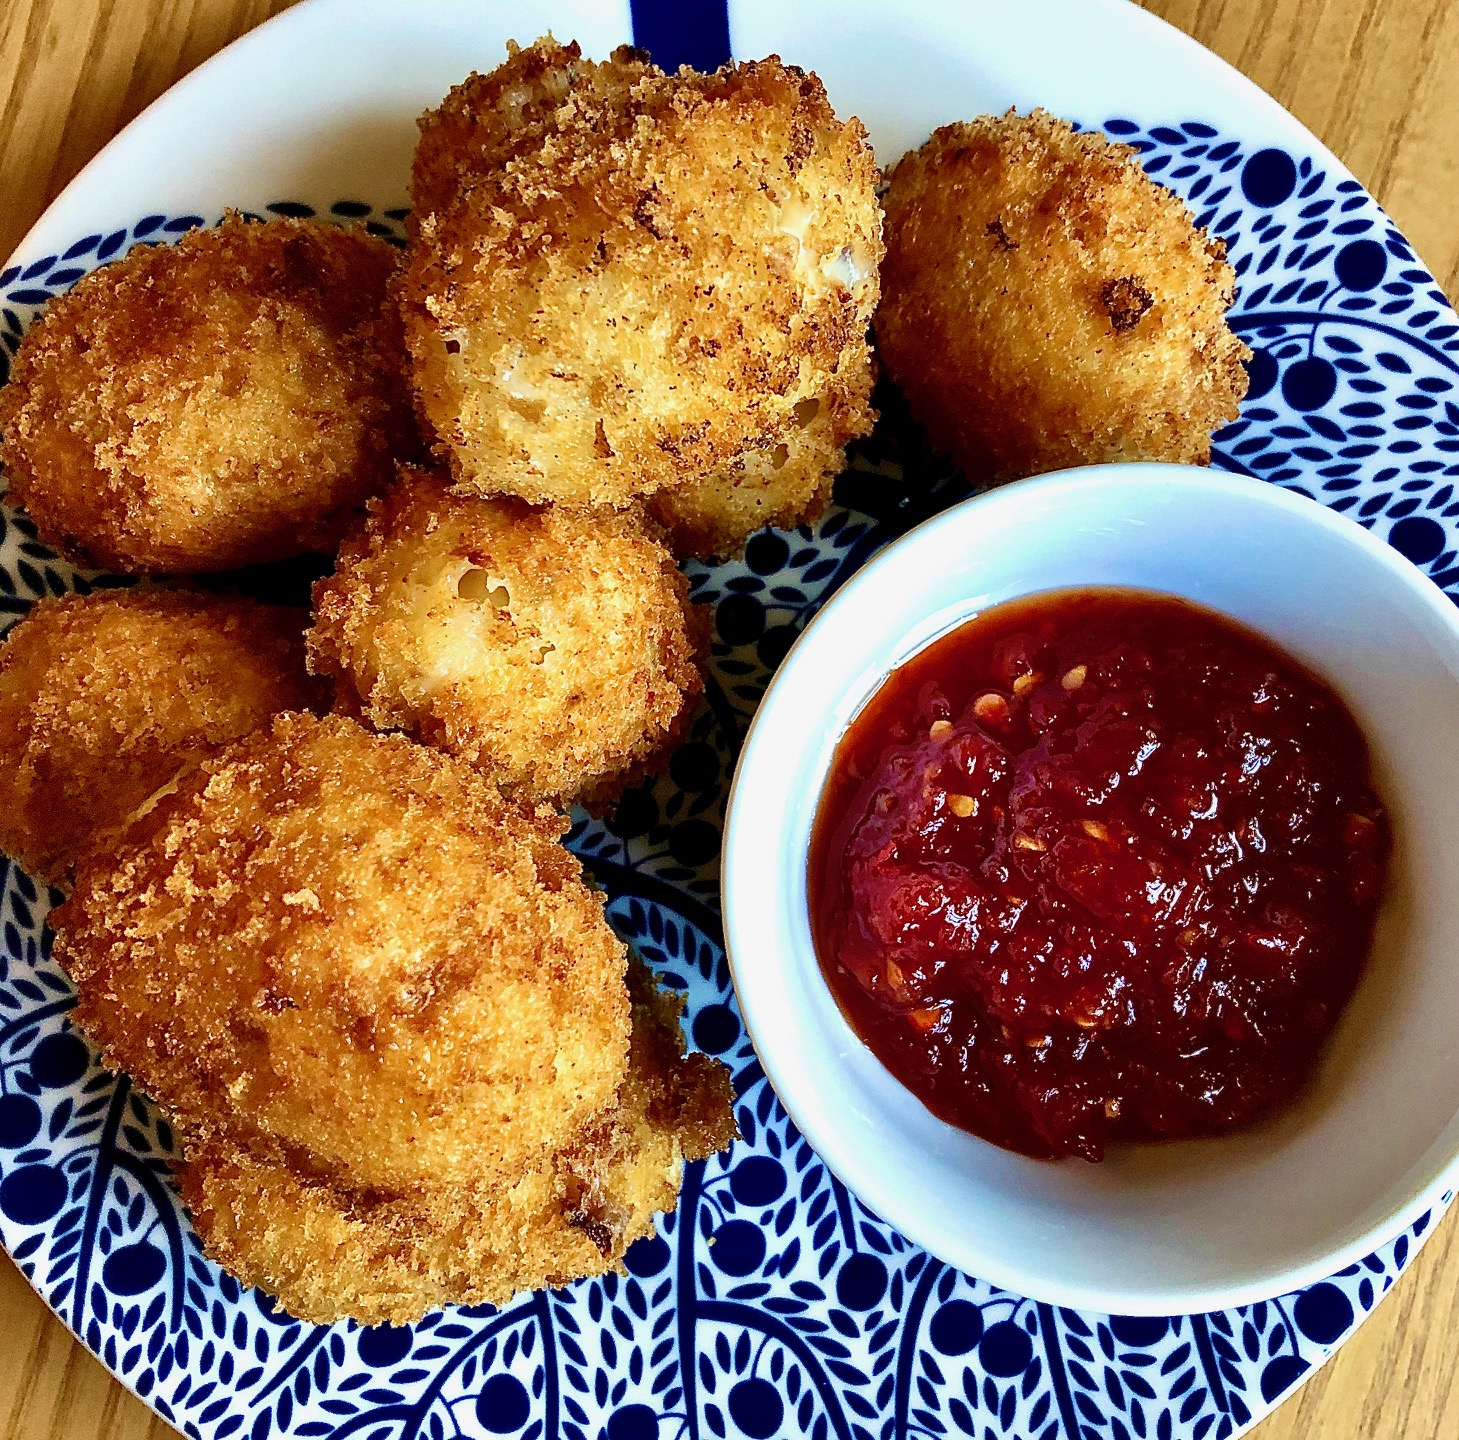 Day 54: Coppa and Cheese Rind Croquettes